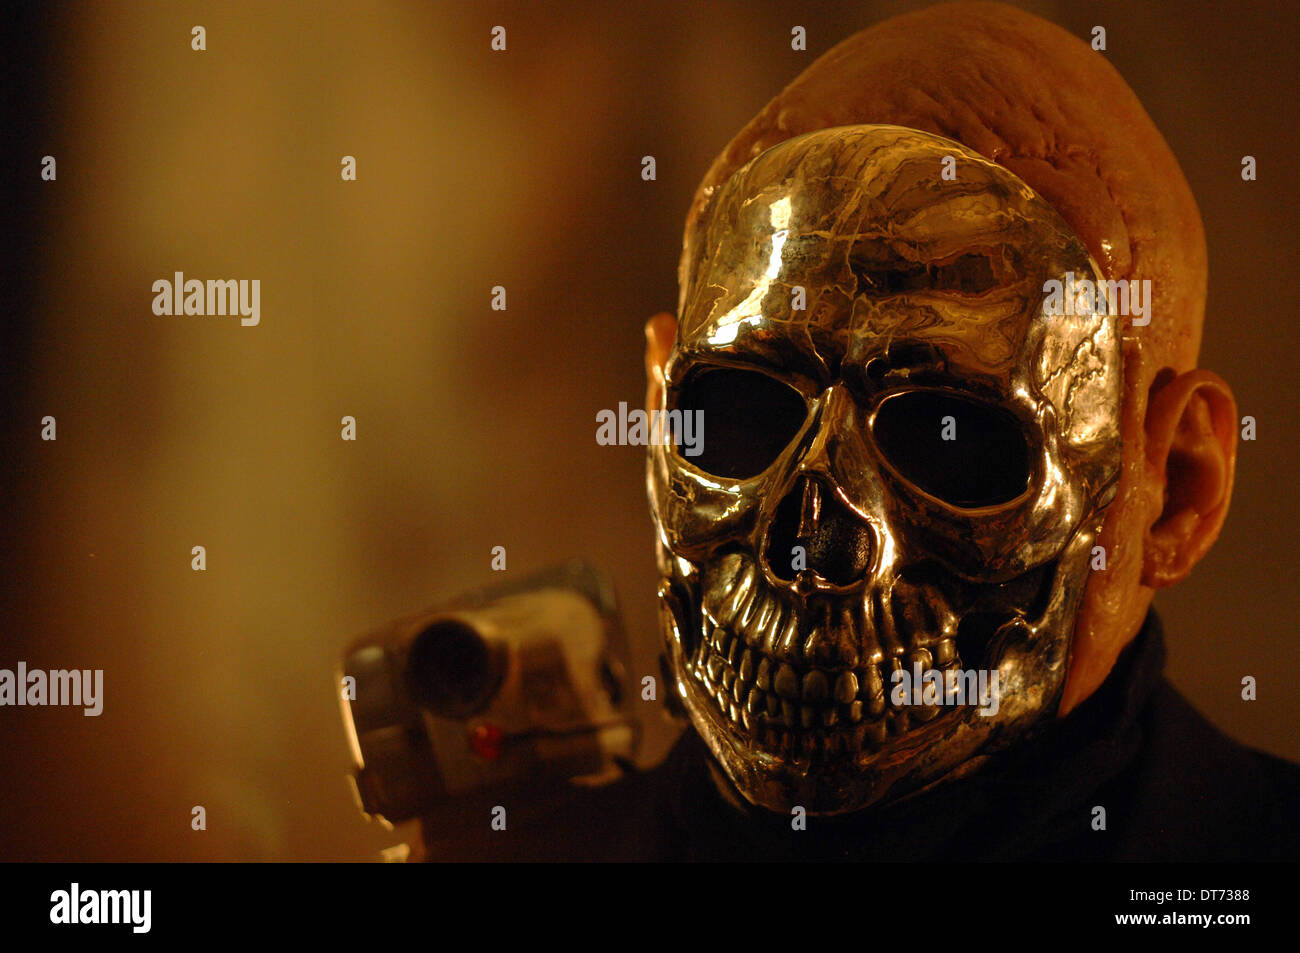 NICK PRINCIPE CHROMESKULL: LAID TO REST 2 (2011) - Stock Image